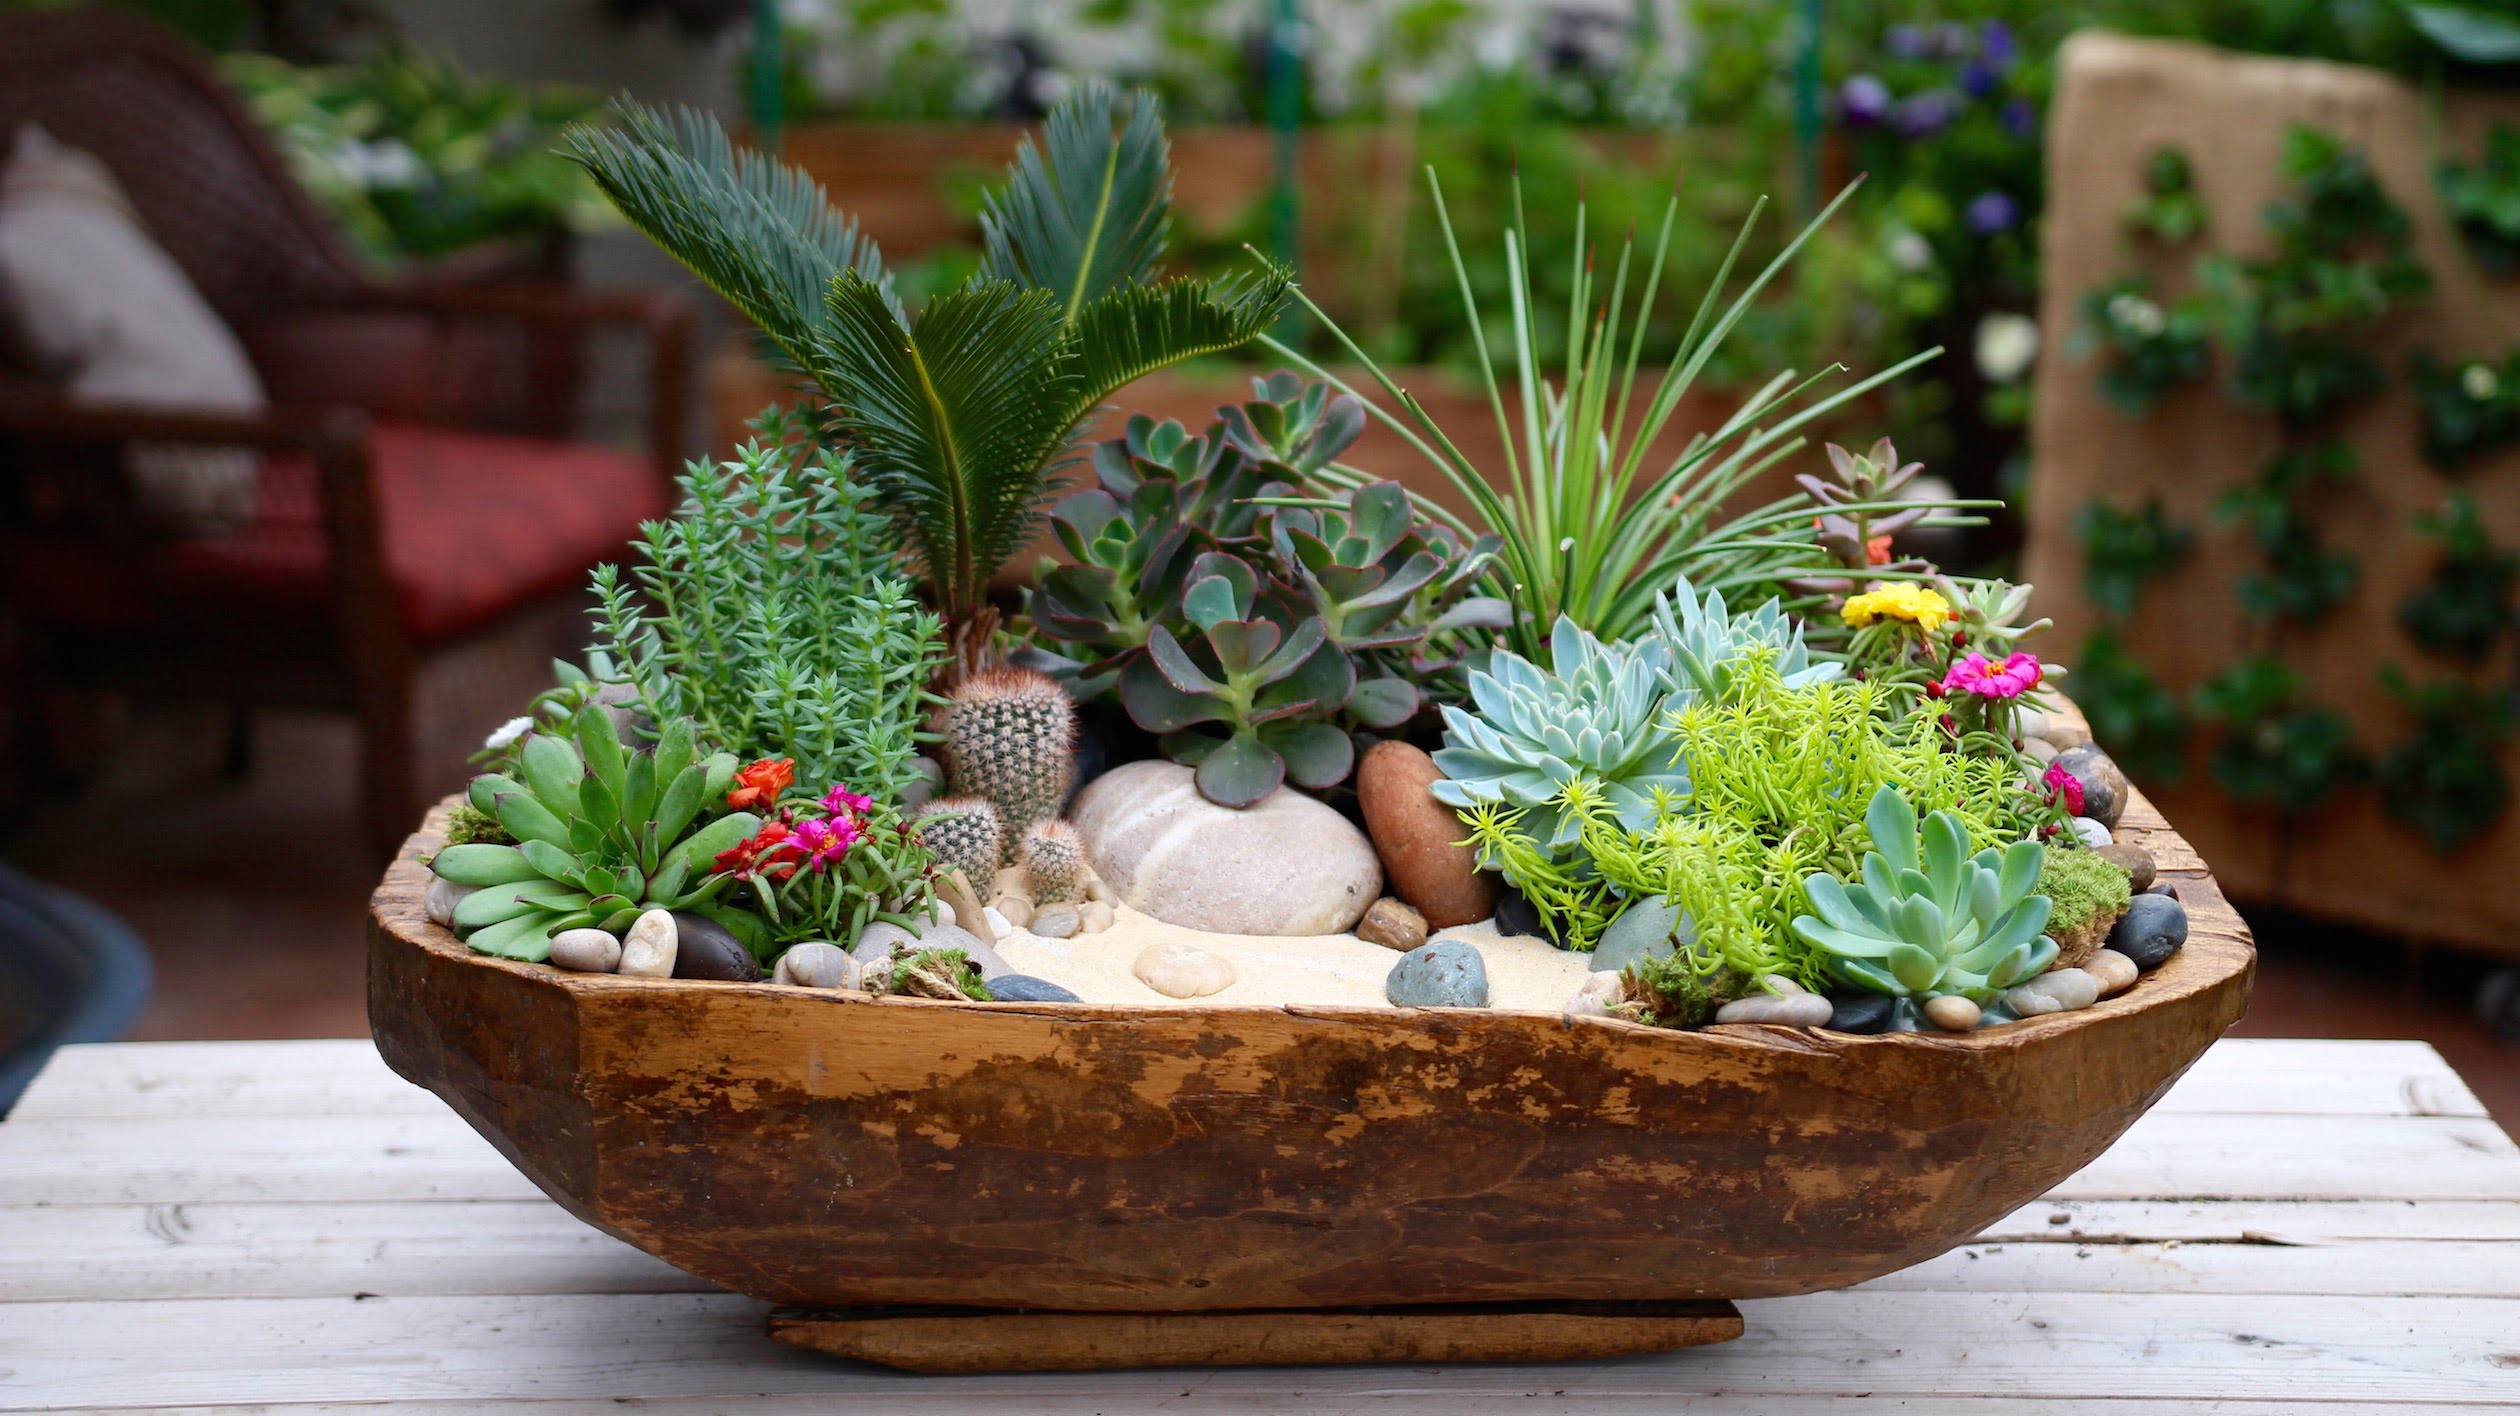 [VIDEO] CRACKED BOWL TURNED SUCCULENT PLANTER